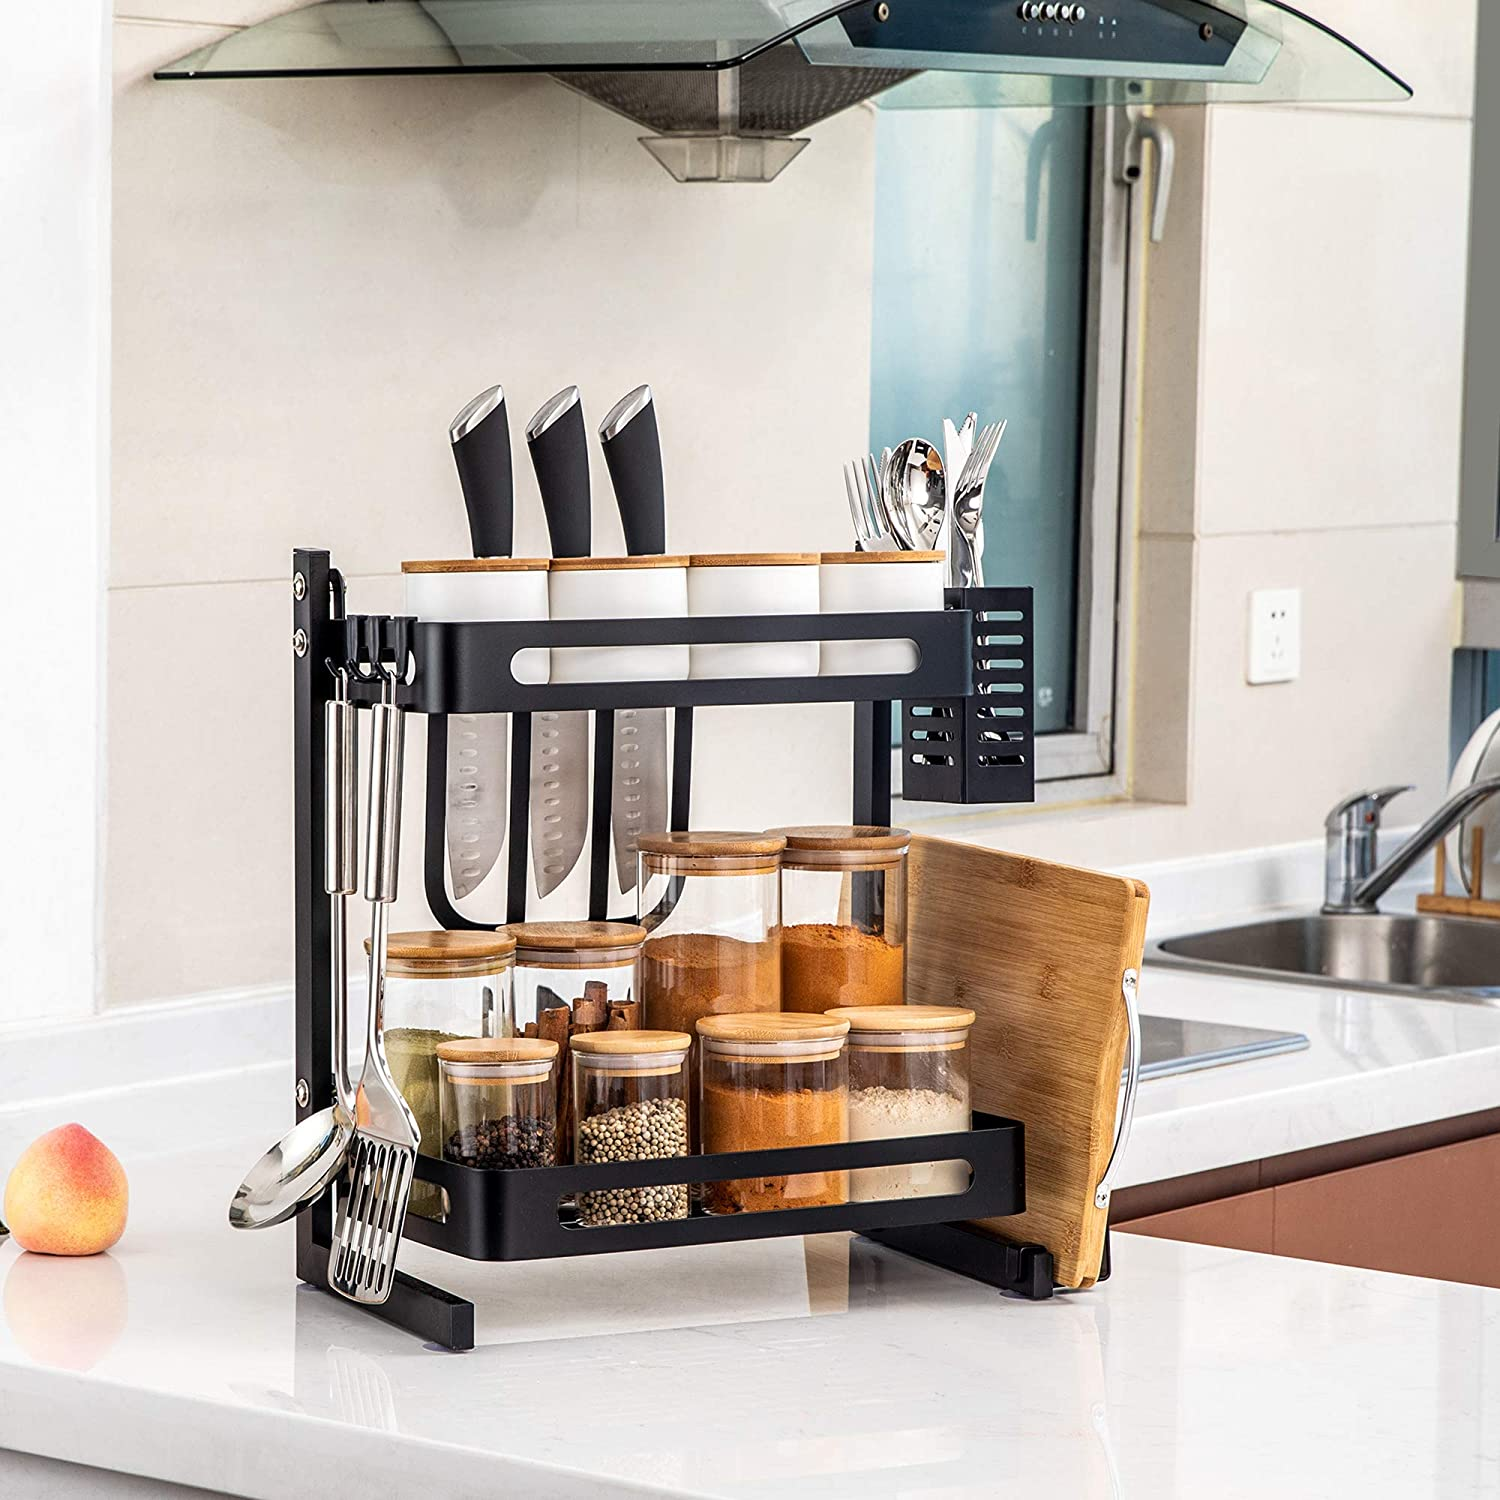 TOLEAD 9 Tier Spice Rack Kitchen Counter Organizer Heavy Duty  Multifunctional Seasoning Storage Shelf with 9 Extra Side Hooks for Knife  Block, ...